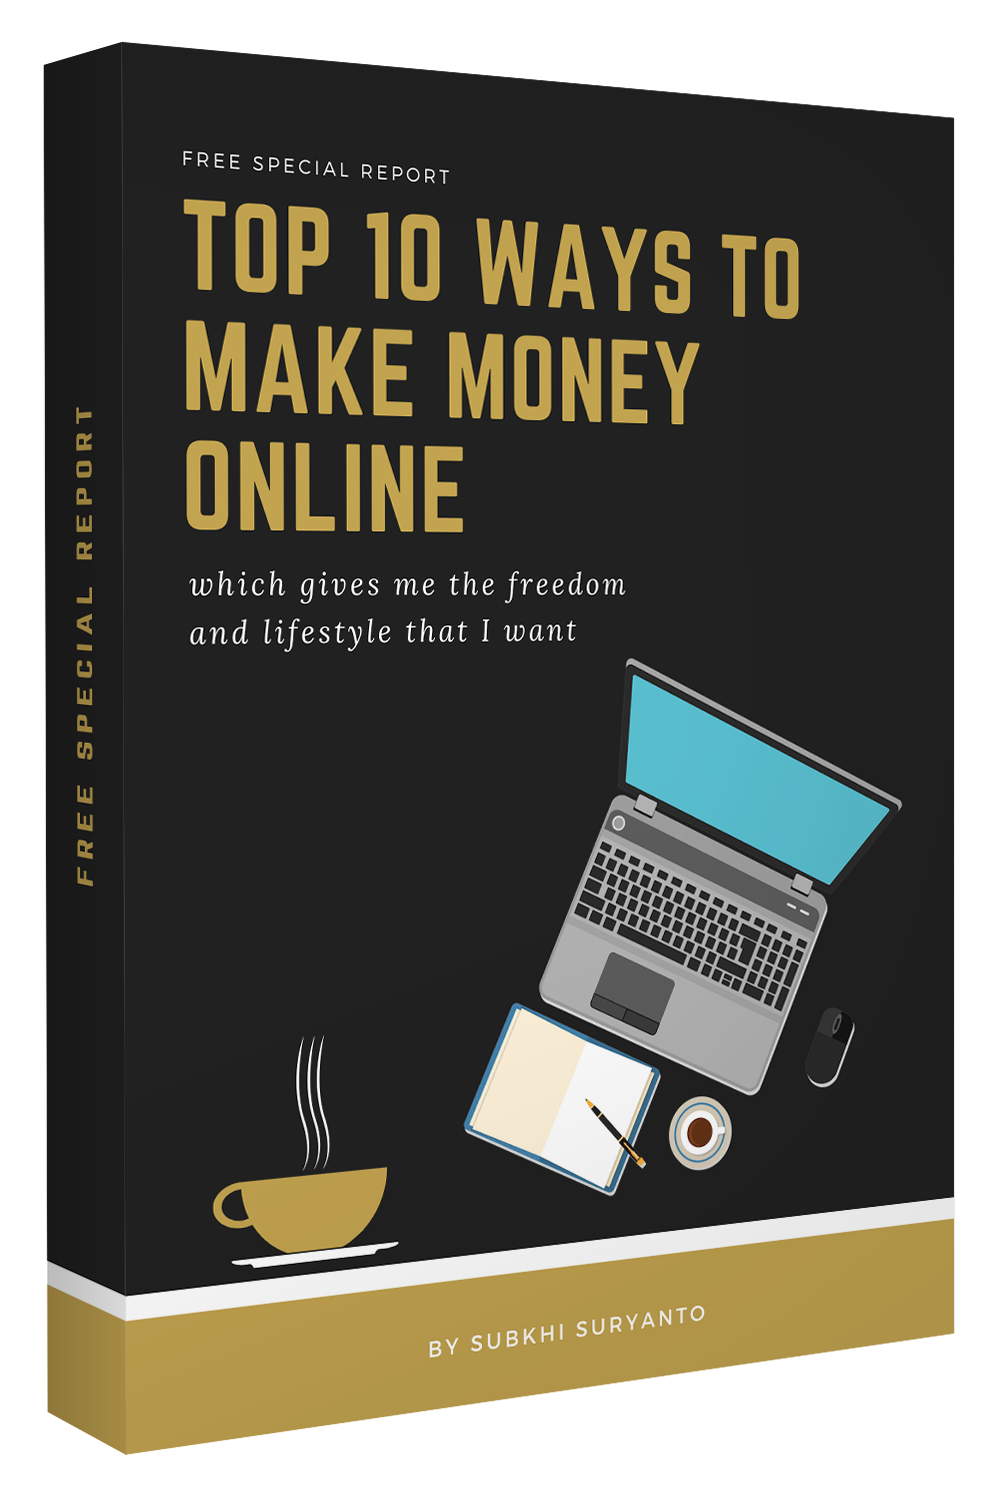 Special Report PDF 10 Ways To Make Money Online - Subkhi ...